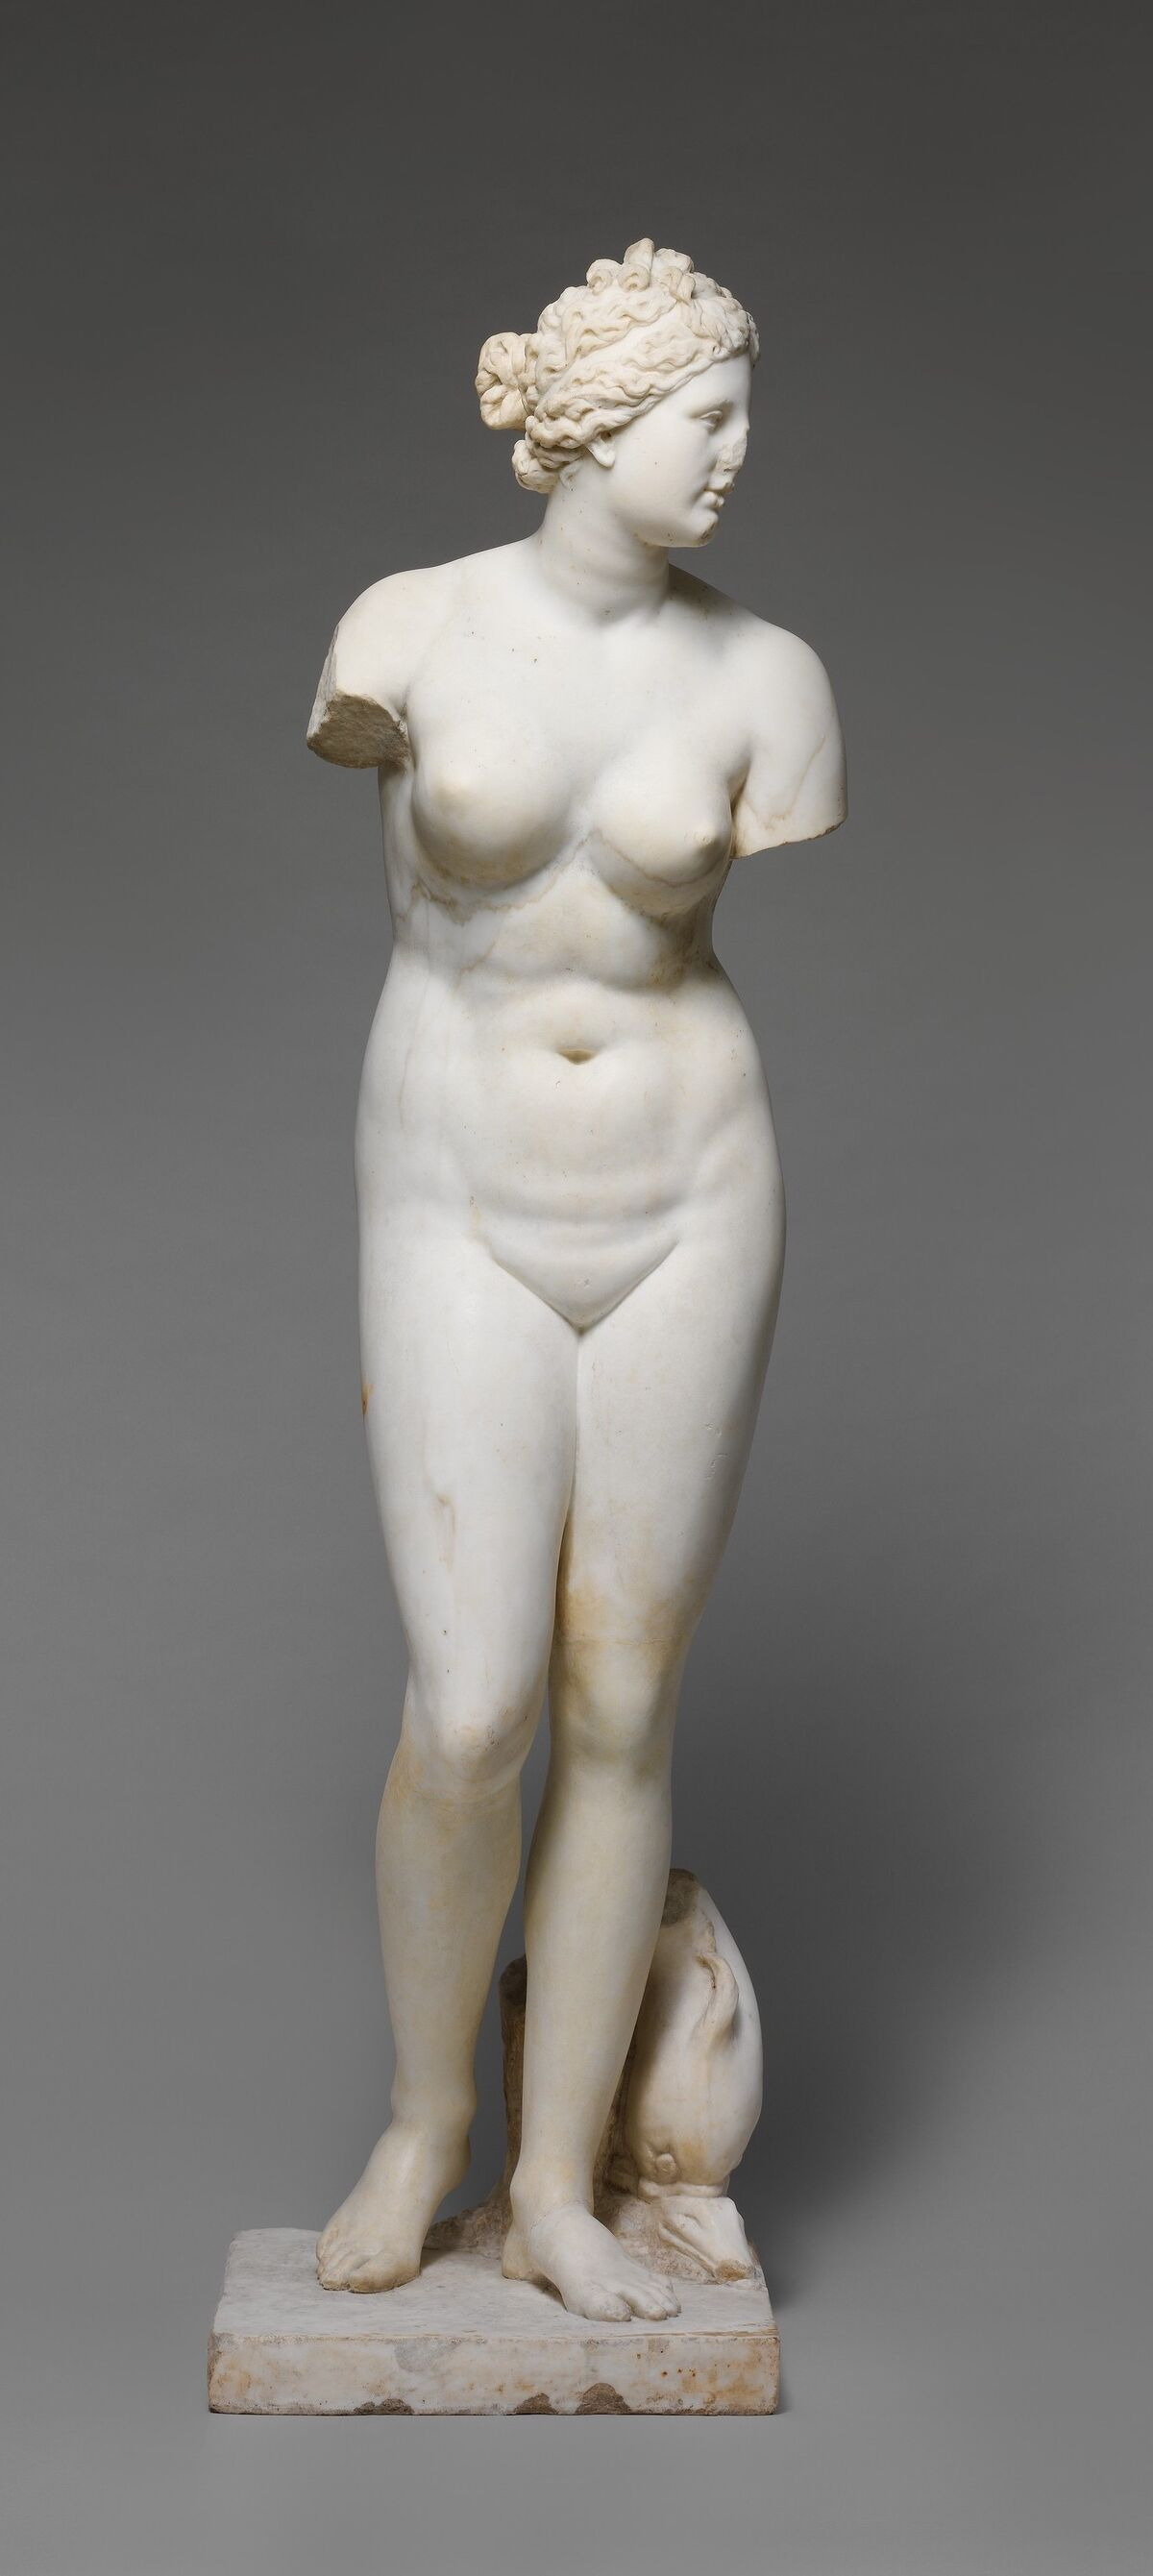 Marble statue of Aphrodite, 1st or 2nd century C.E. Courtesy of the Metropolitan Museum of Art.